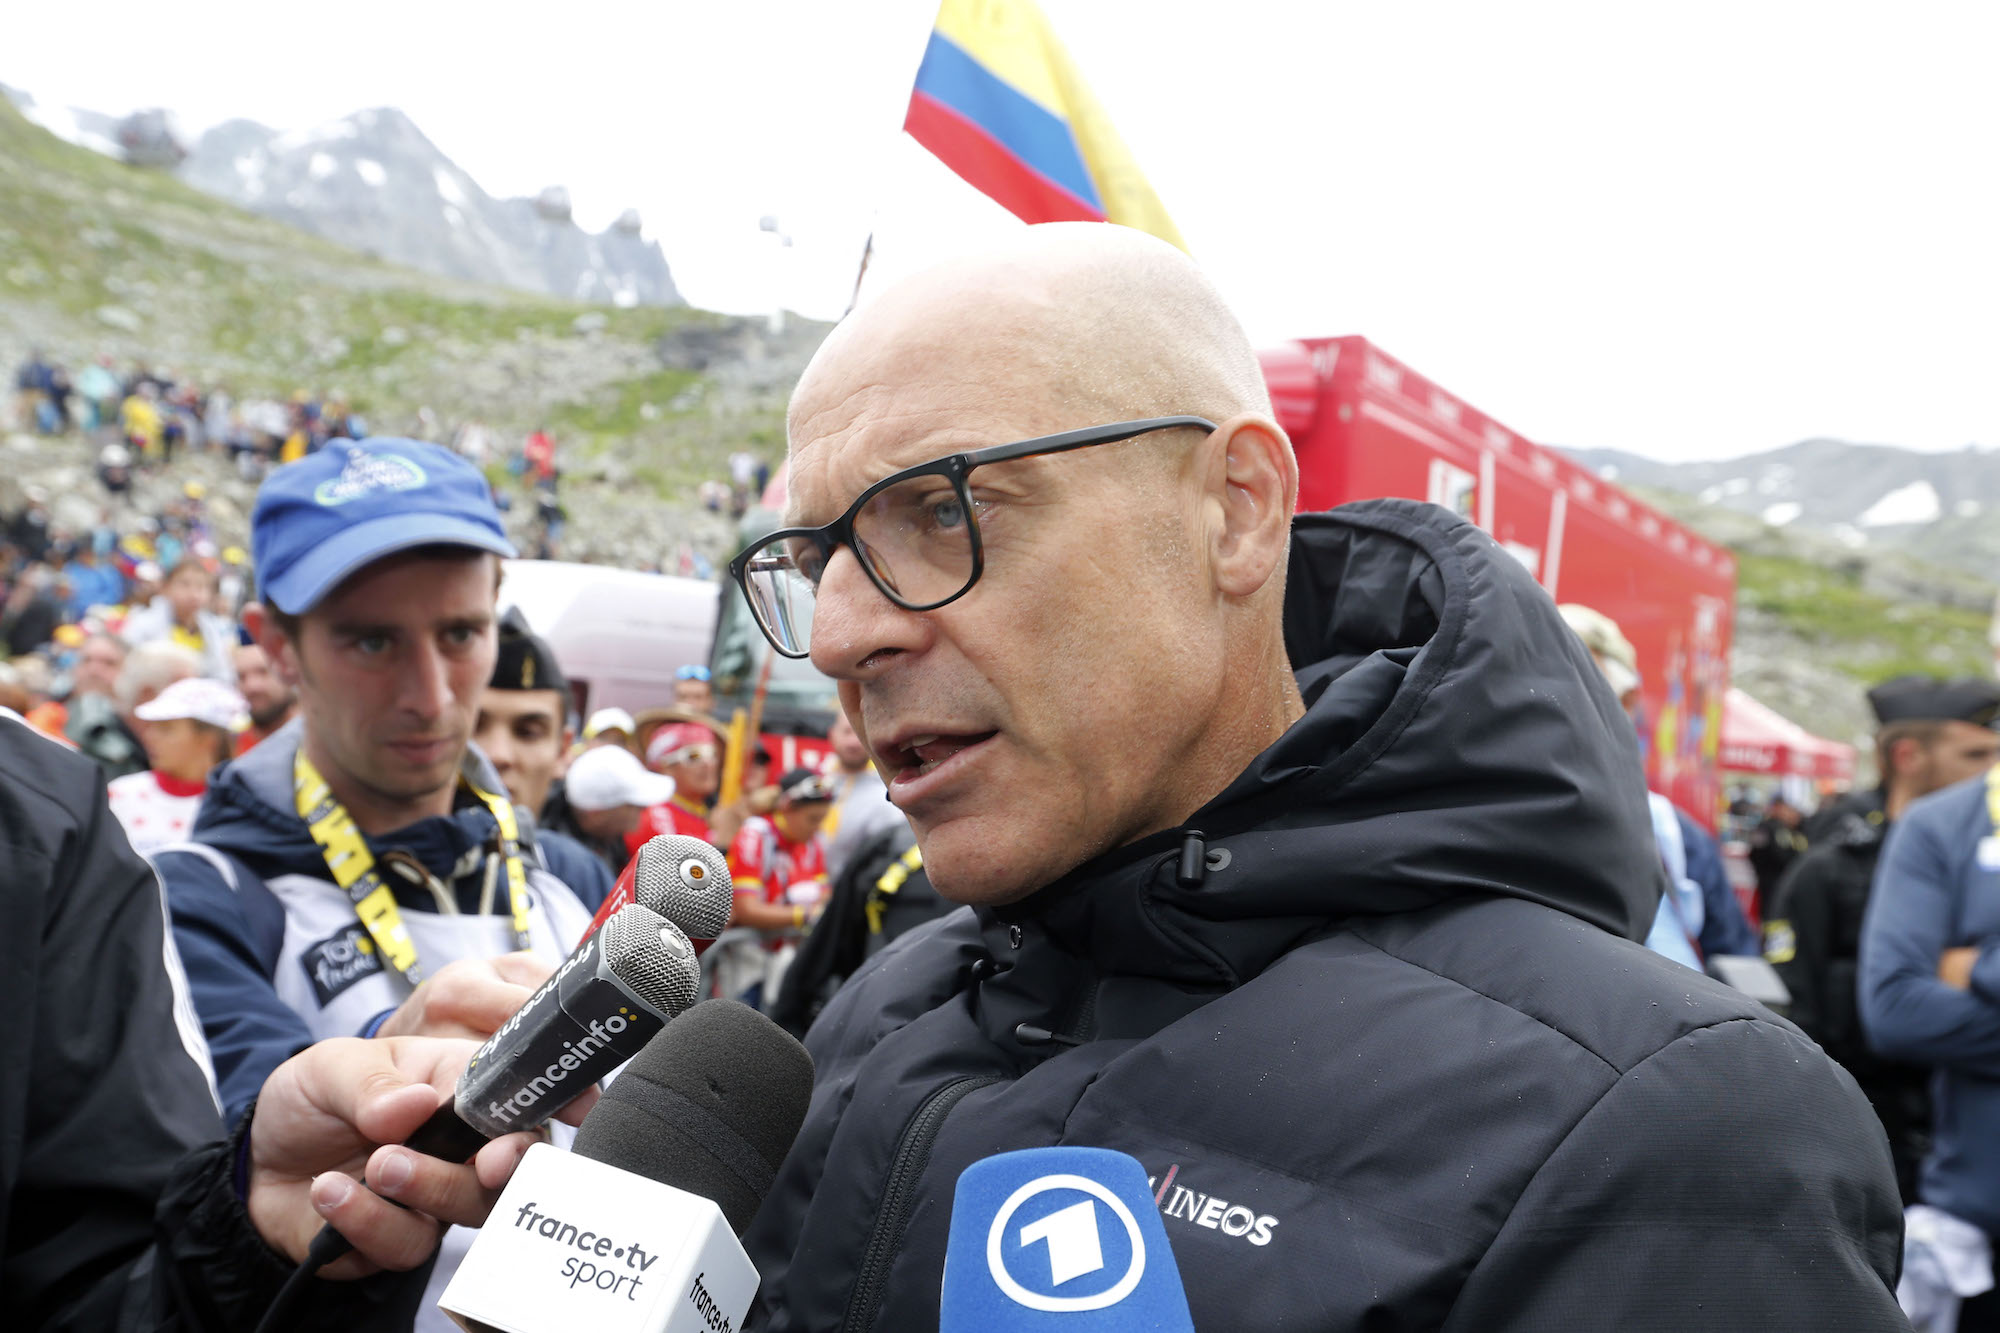 Sir Dave Brailsford: Geraint Thomas and Chris Froome know when to put the team first